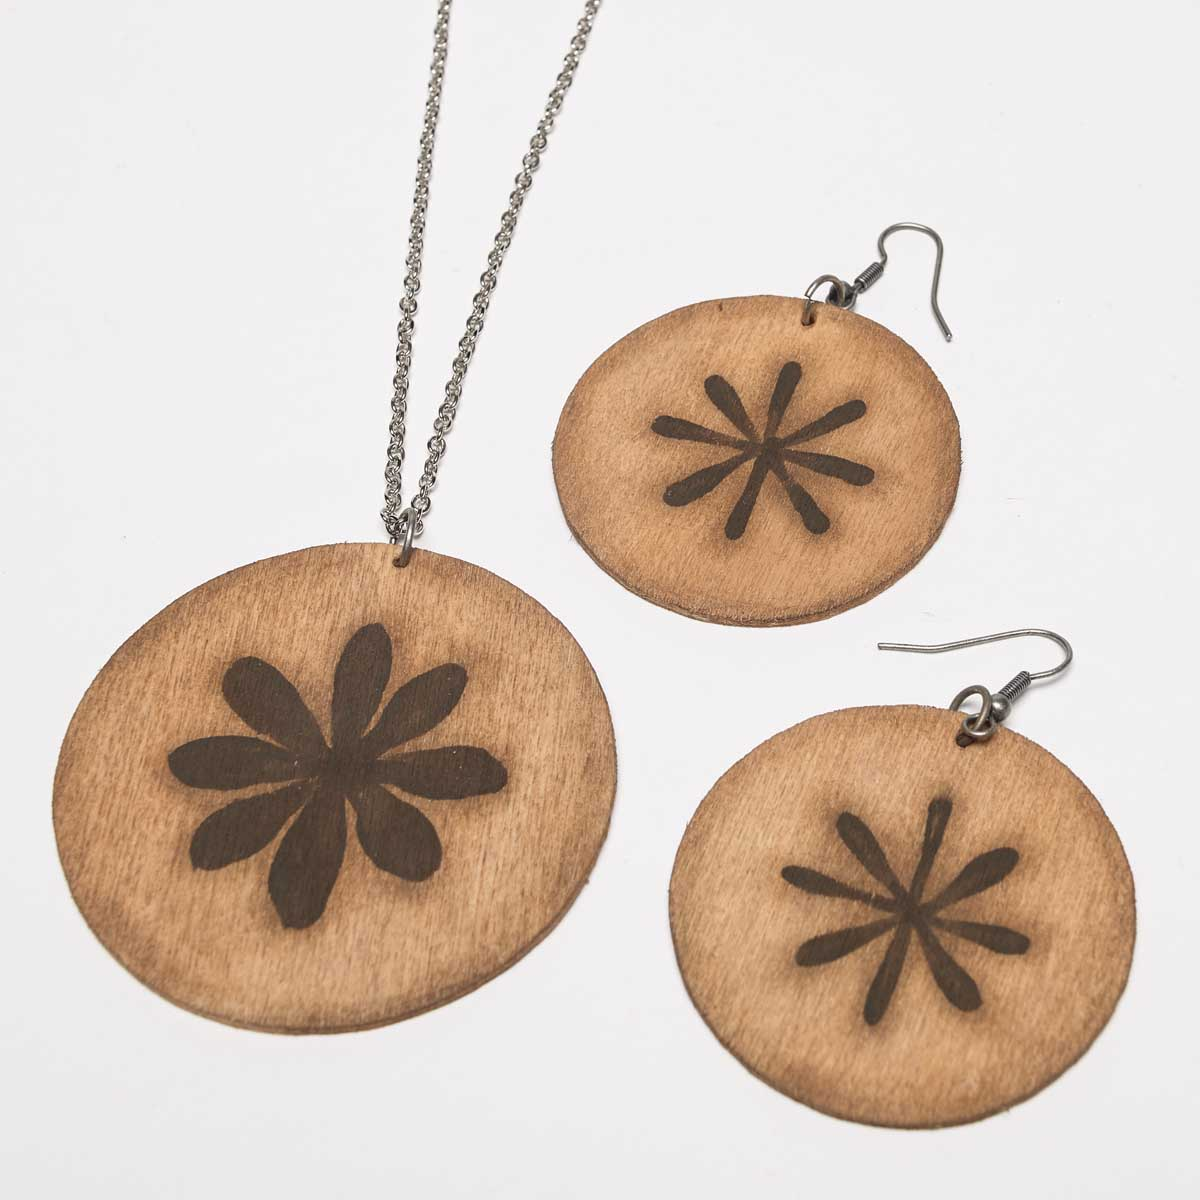 Wooden Tag Necklace and Earrings